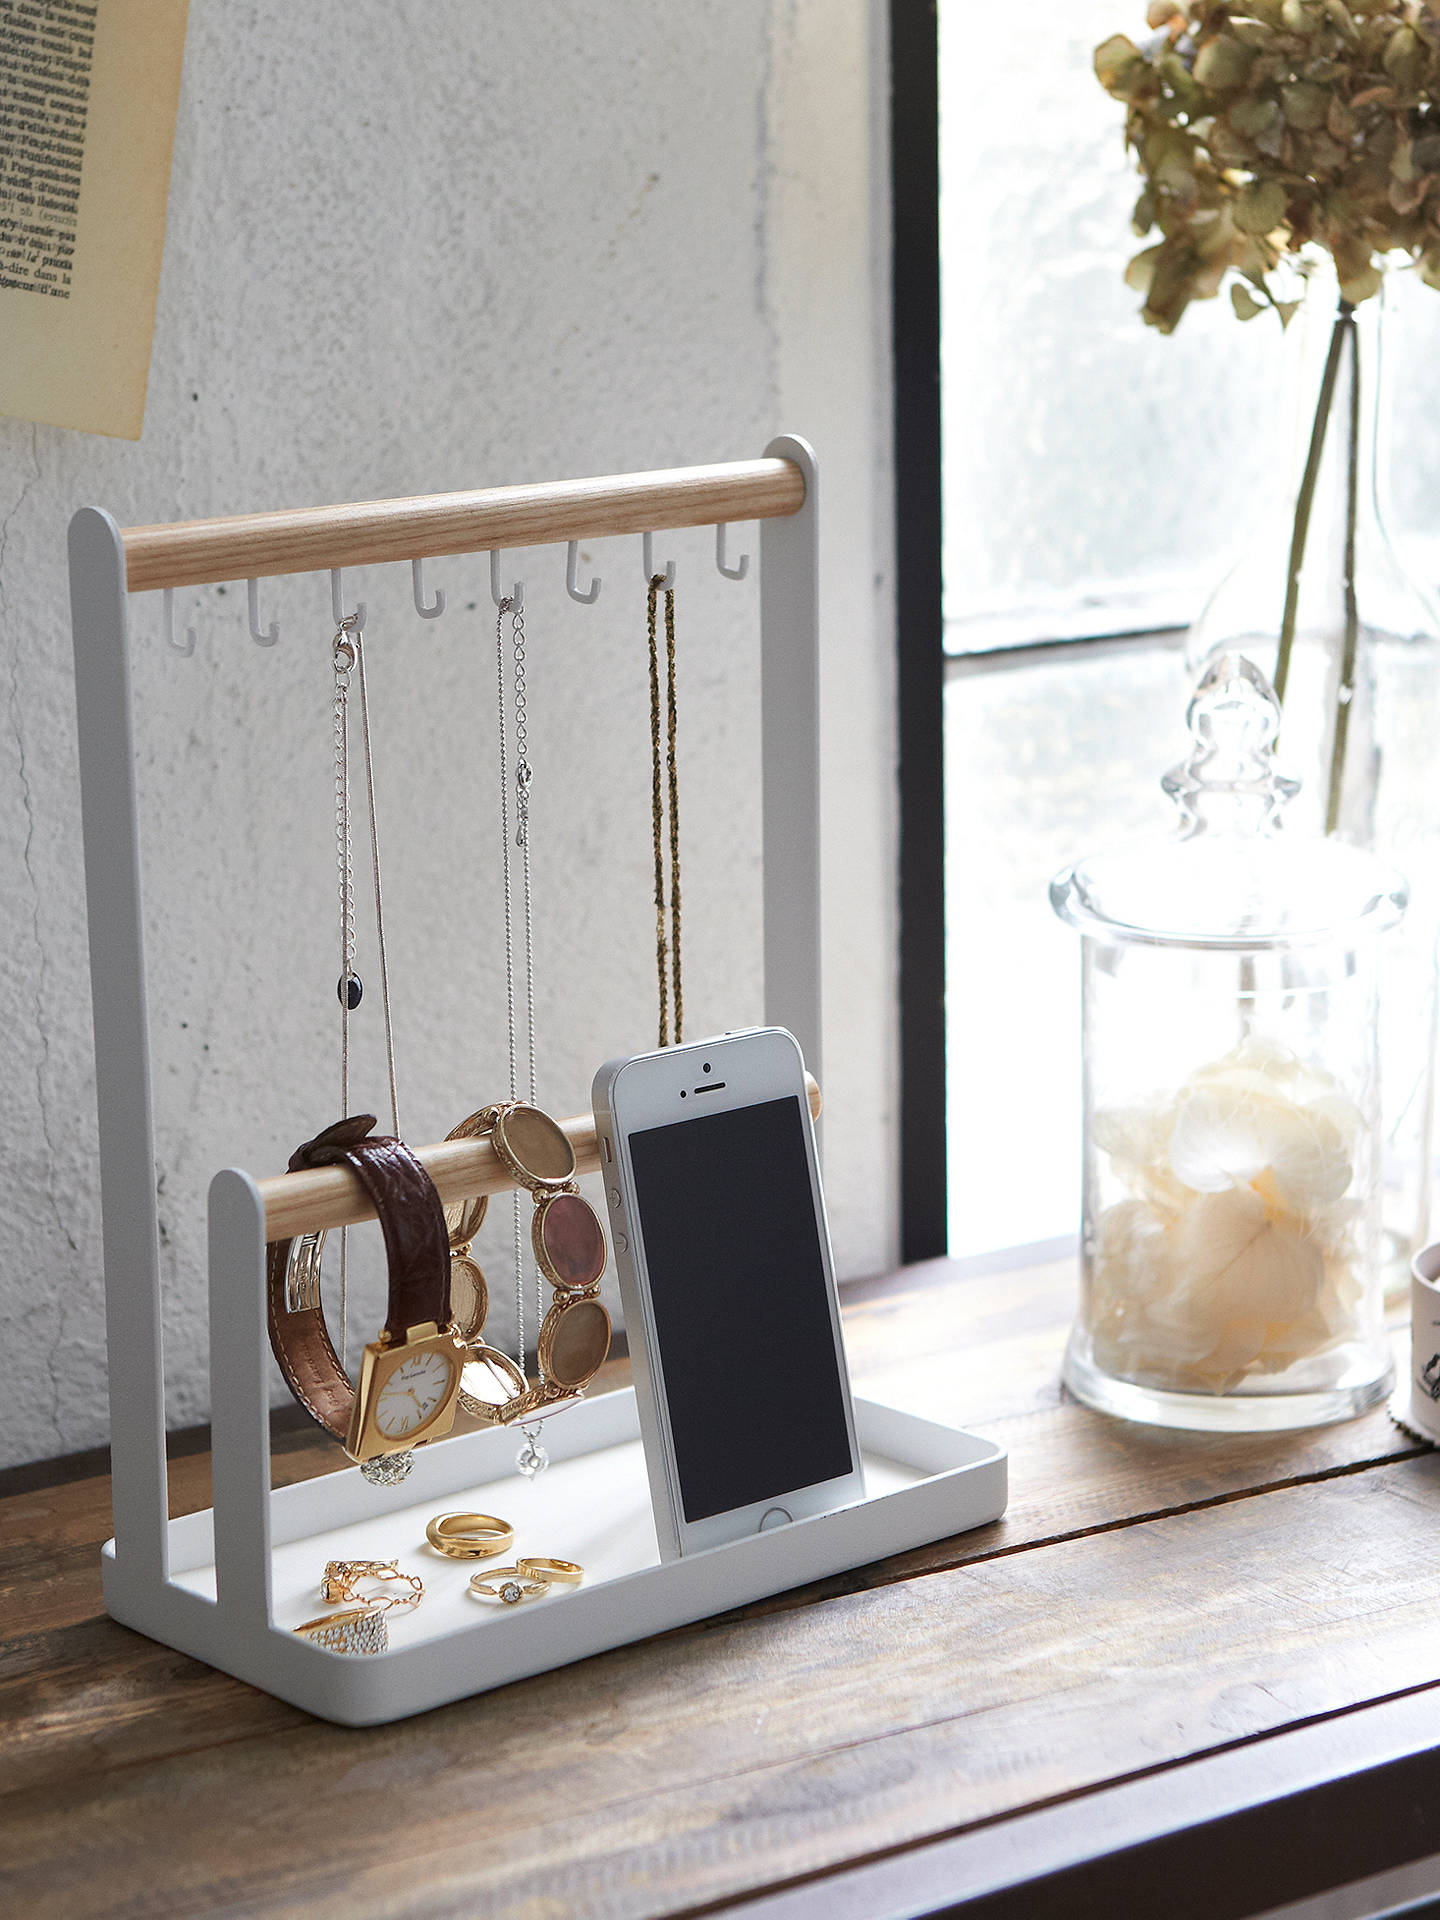 Buy Yamazaki Tosca Accessories Stand Online at johnlewis.com